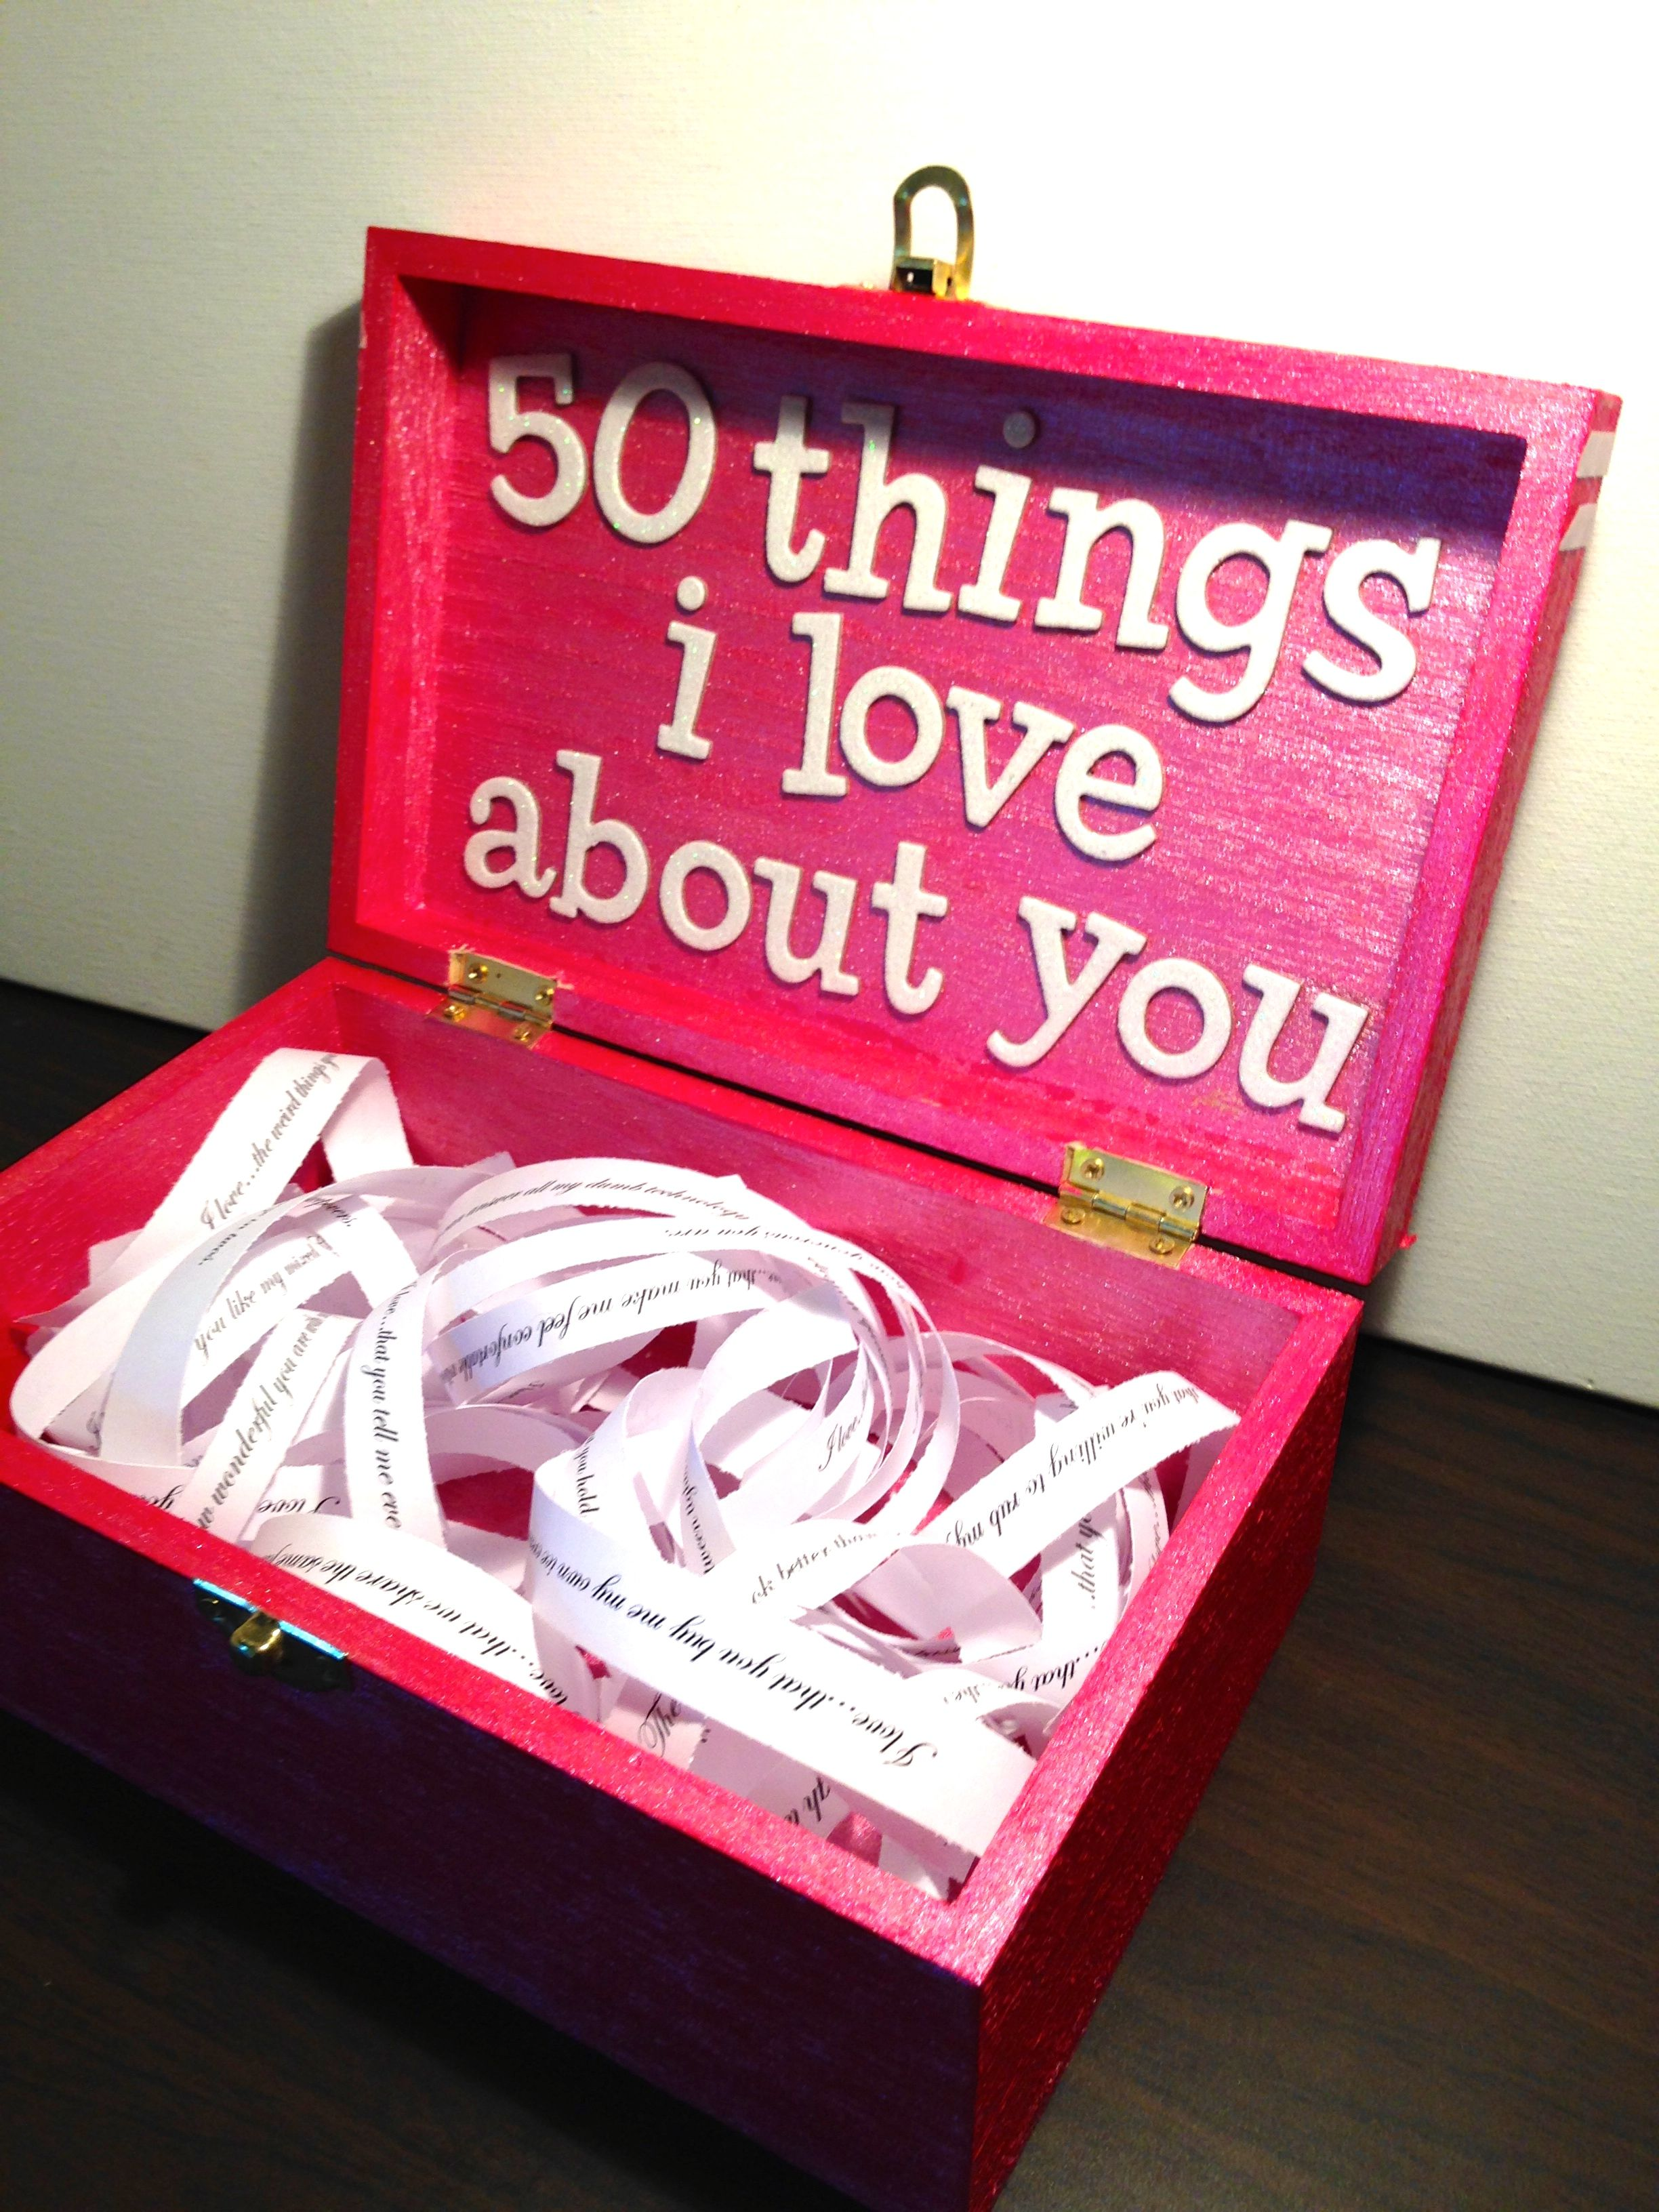 Boyfriend Girlfriend Gift Ideas For Birthday Valentines Or Just A Random Box With 50 Things I Love About You